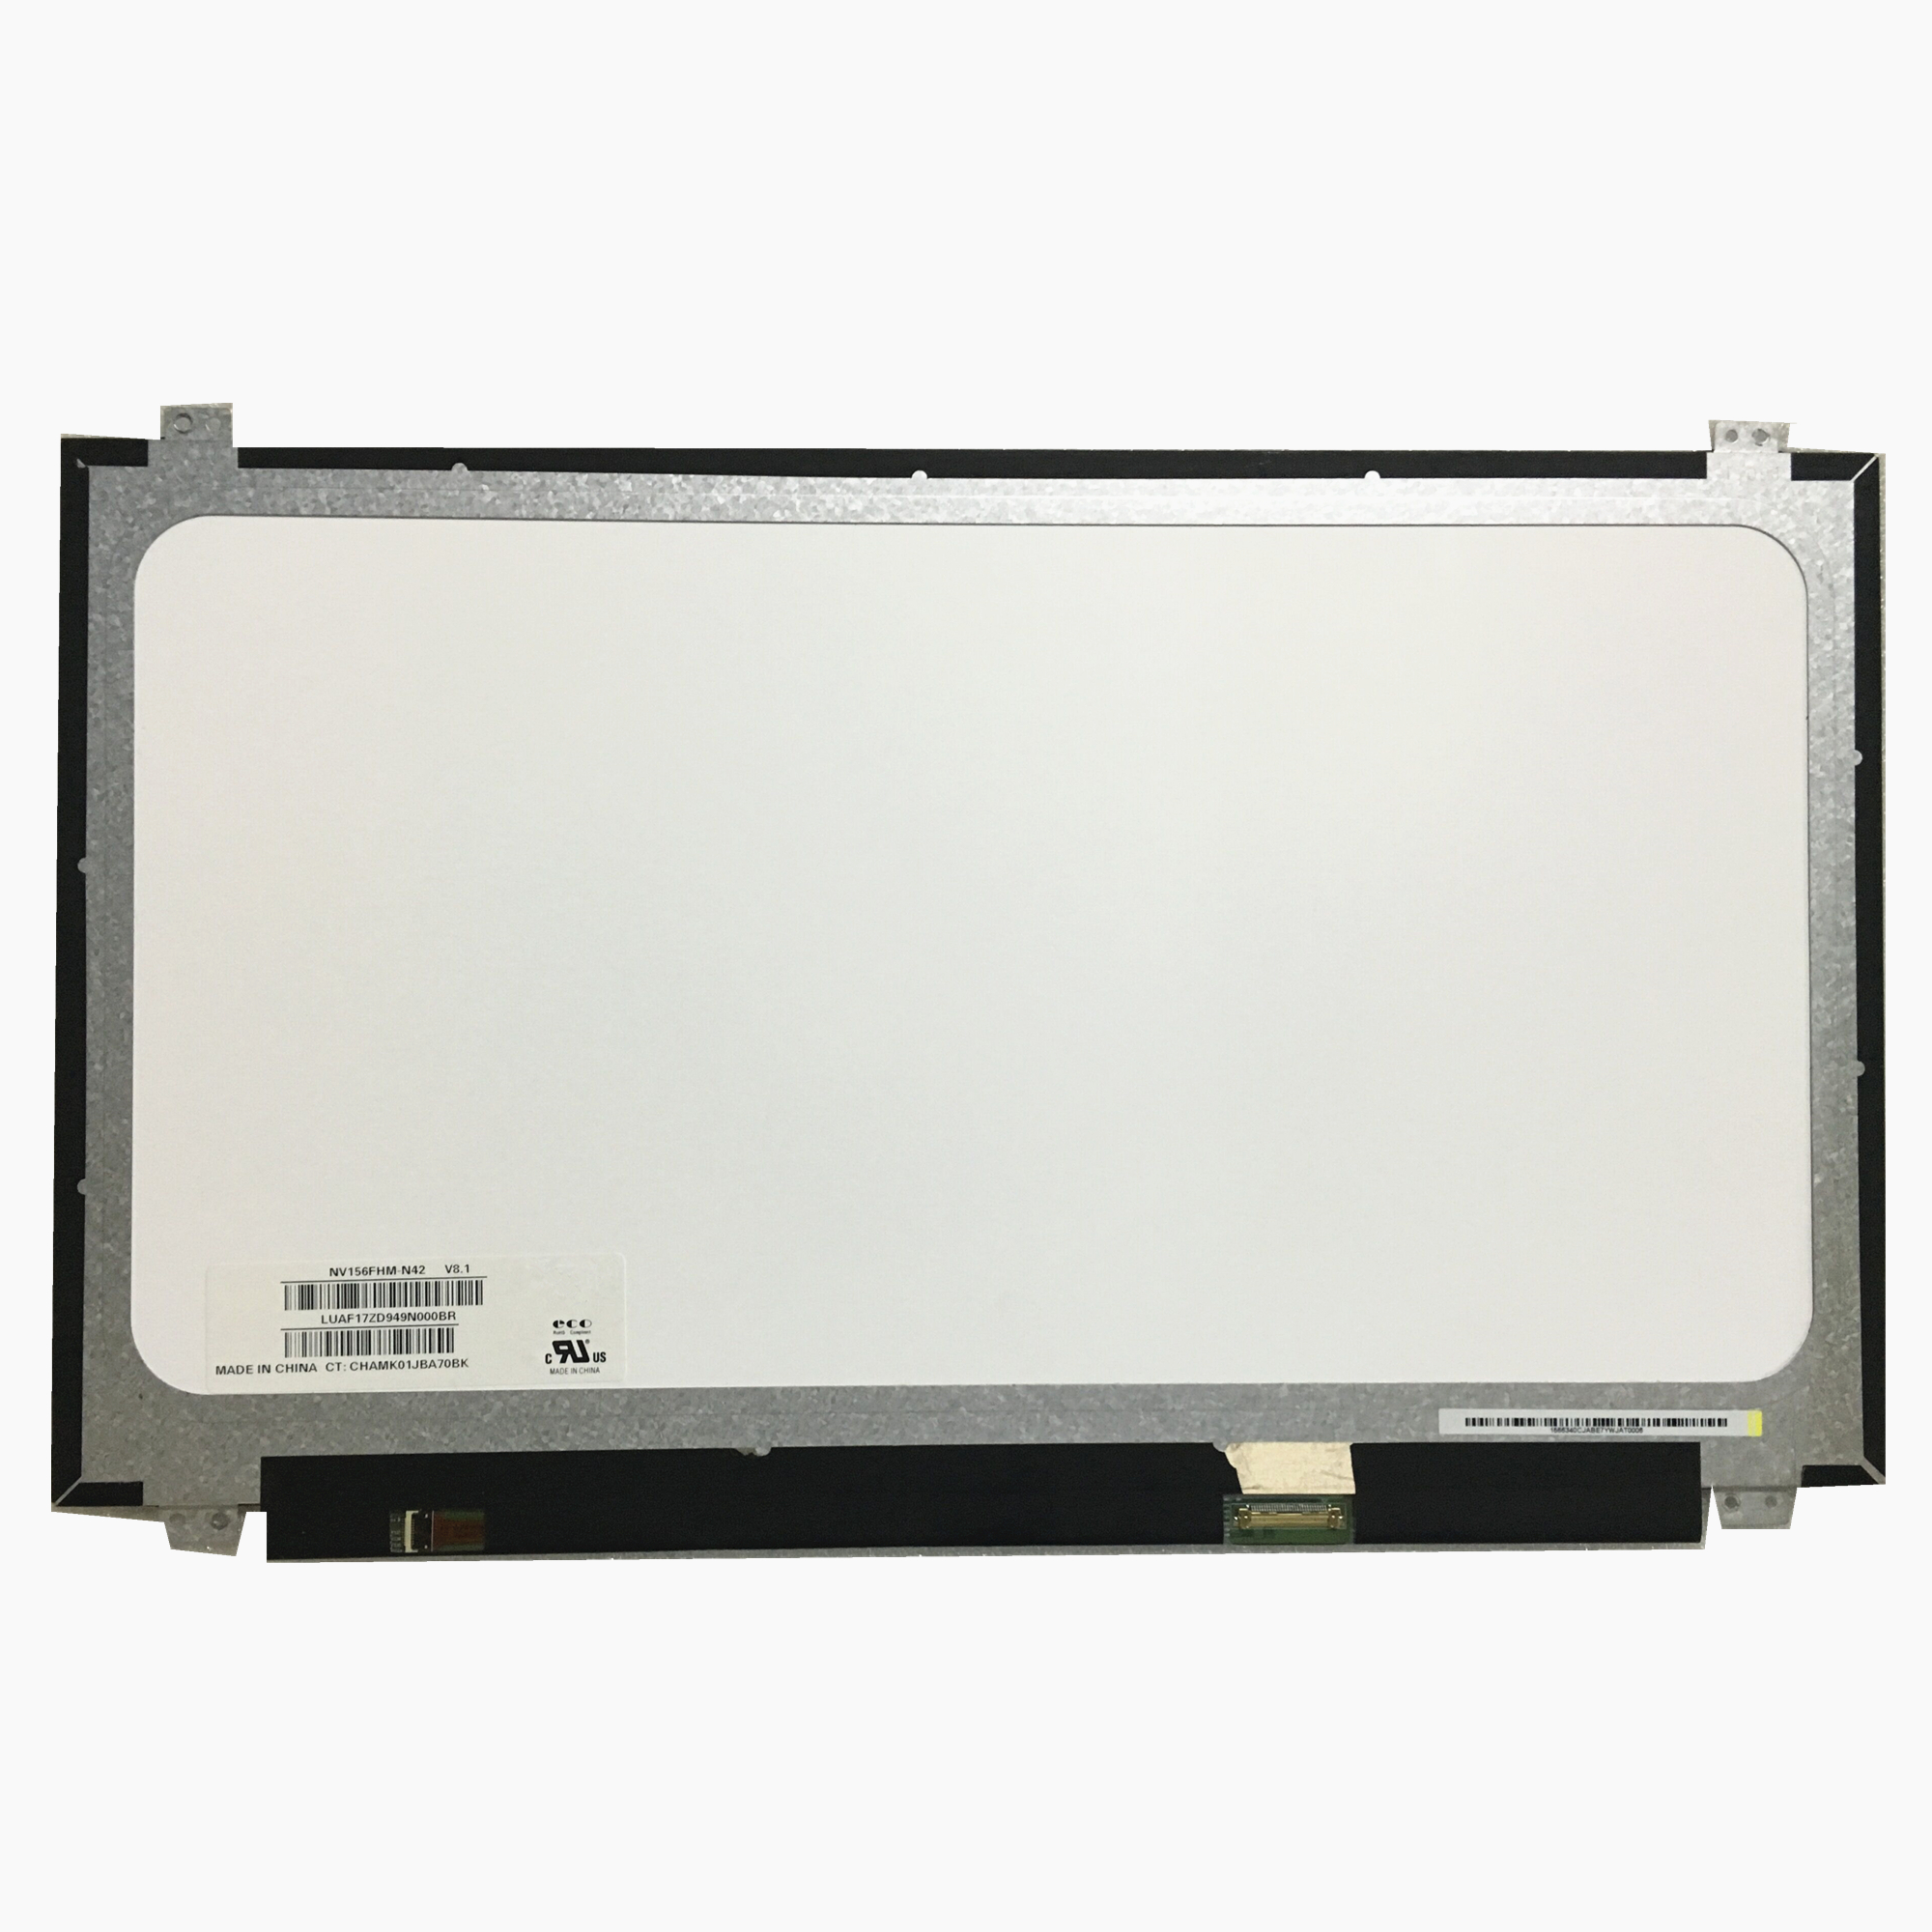 Free Shipping NV156FHM N42 NV156FHM N42 fit NV156FHM N41 NV156FHM N43 LP156WF4 SPU1 LP156WF6 SPF1 1920*1080 EDP 30 Pins IPS-in Laptop LCD Screen from Computer & Office    1